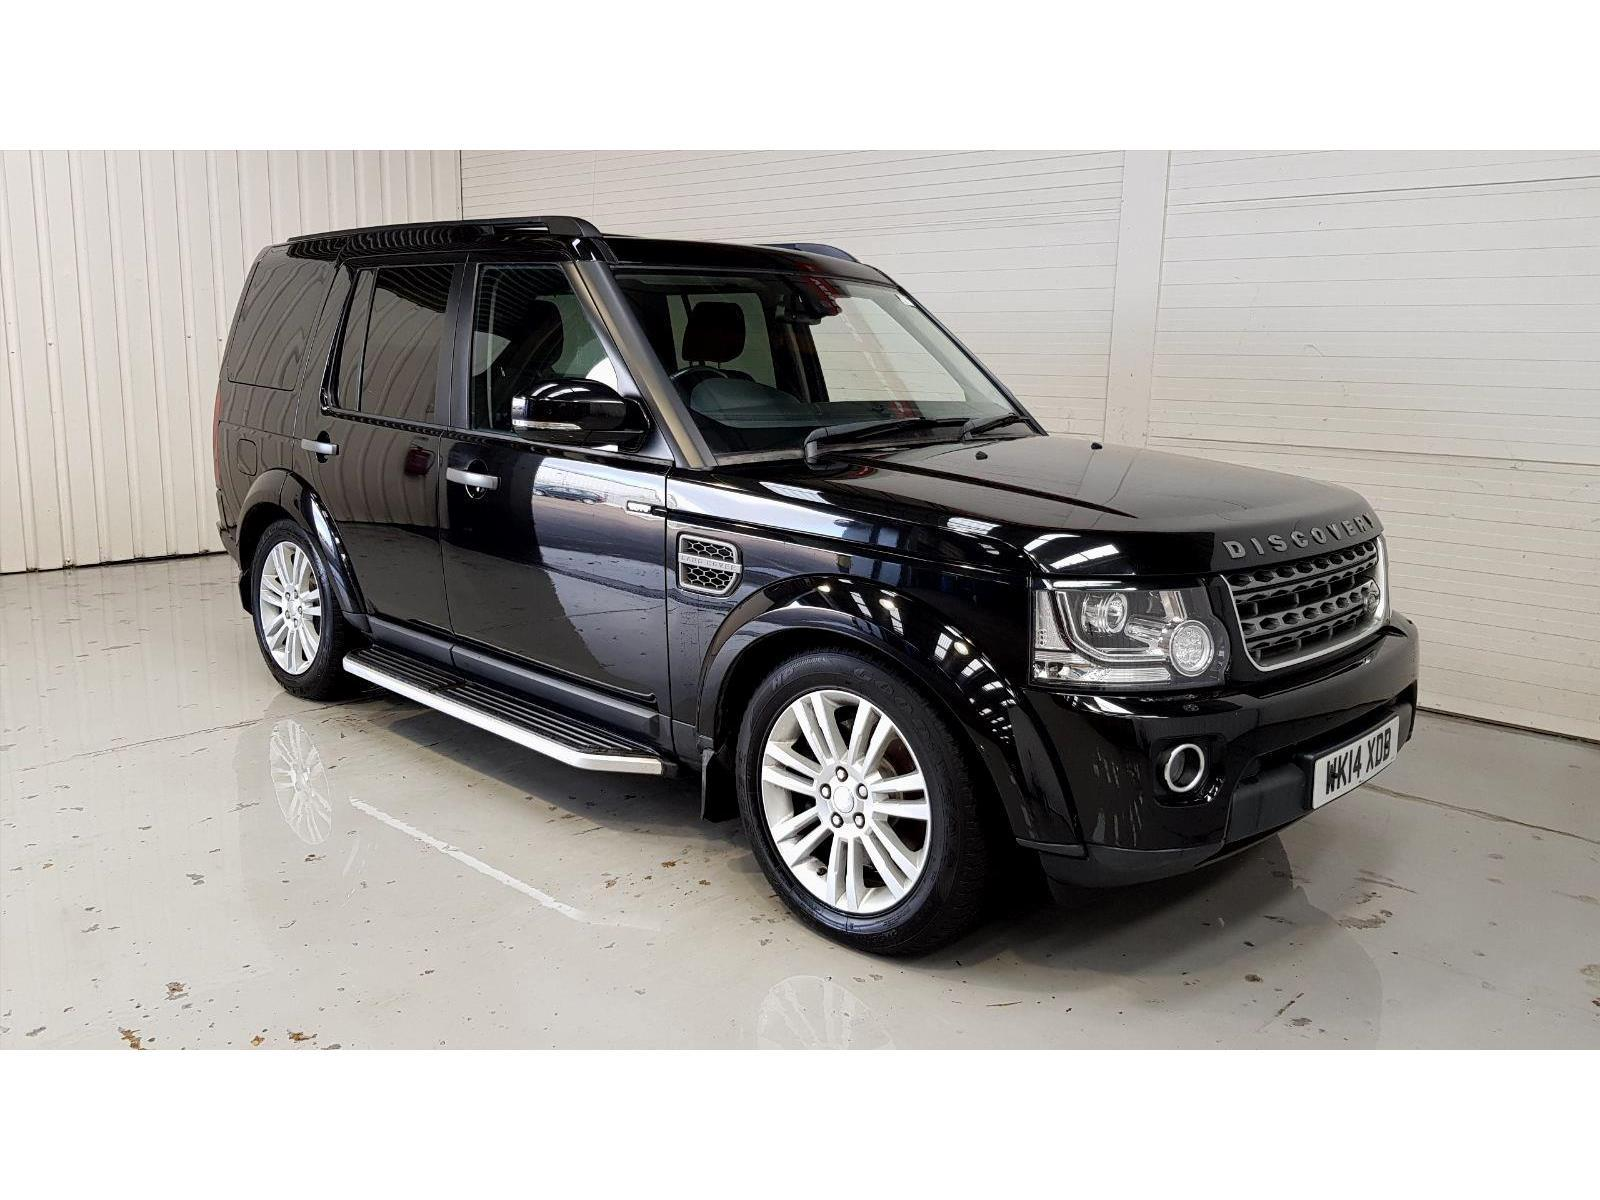 2014 Land Rover Discovery GS SDV6 2993cc Turbo Diesel Automatic 8 Speed 5 Door 4x4